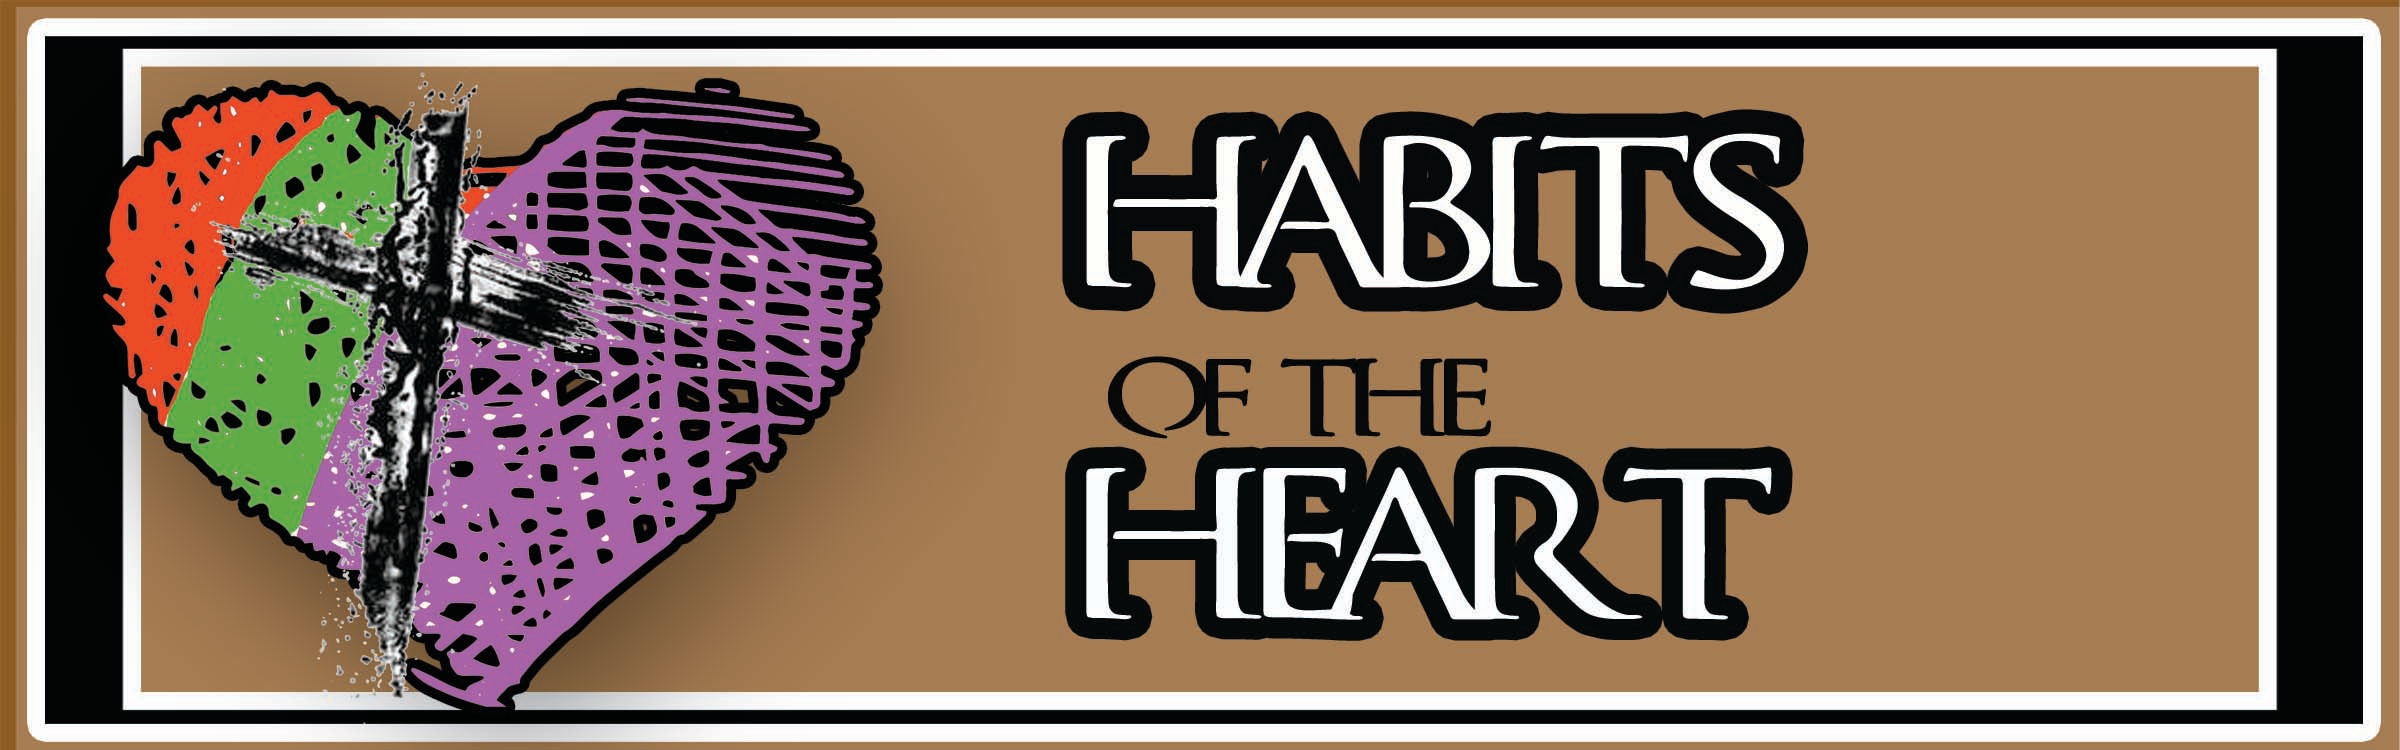 xtra sml HABITS OT HEART BANNER 1brown